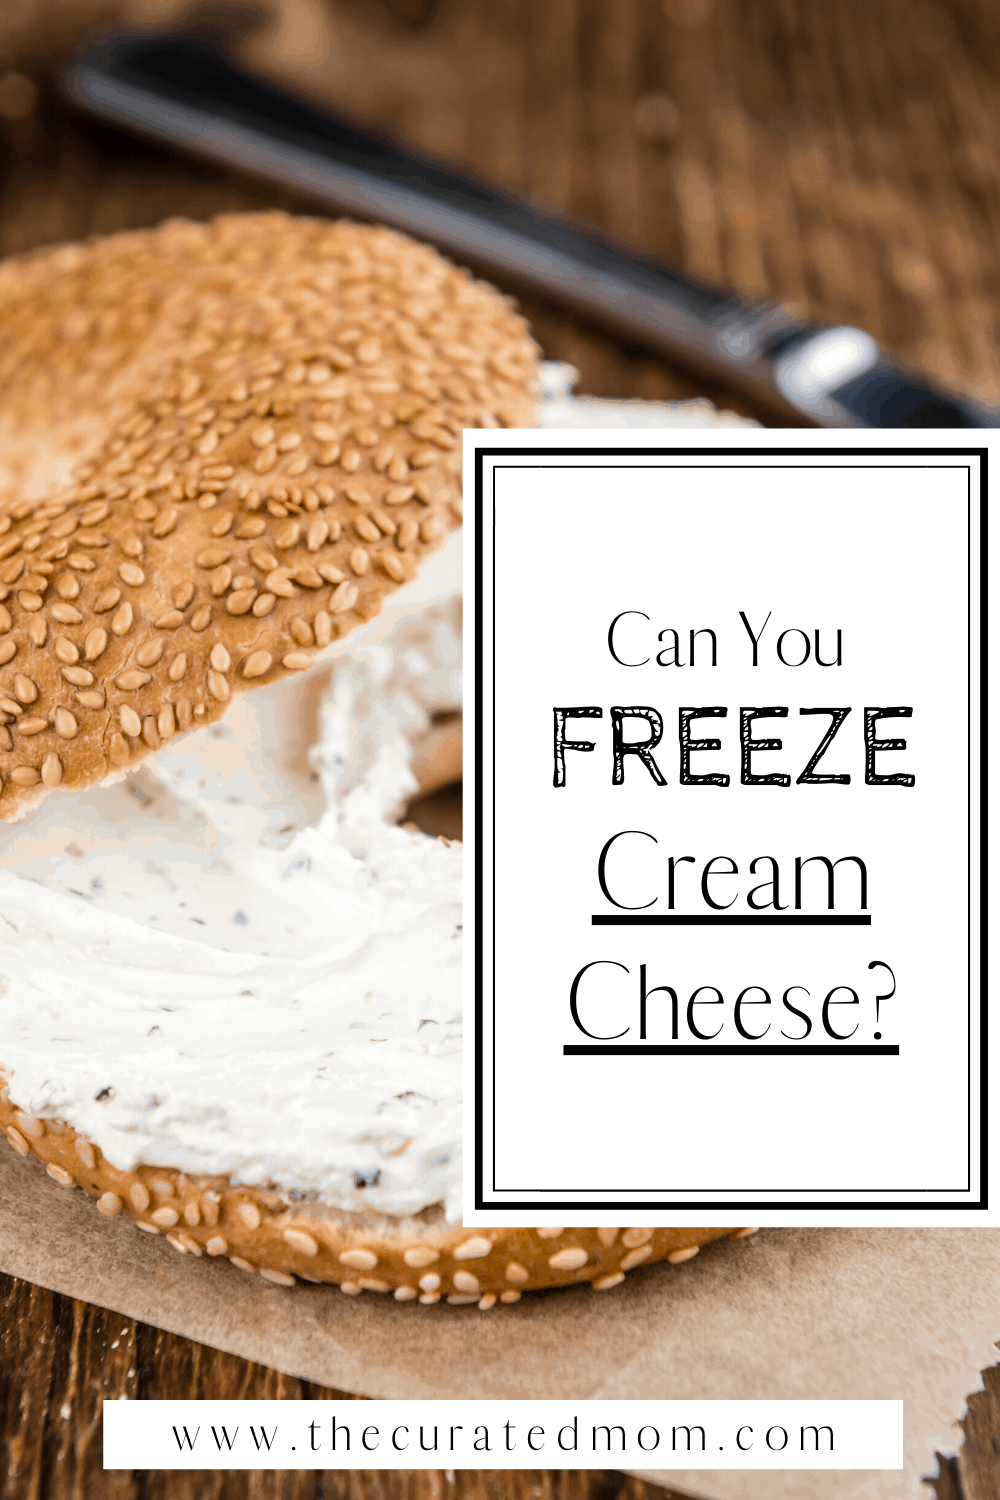 Bagel with cream cheese with text reading can you freeze cream cheese?